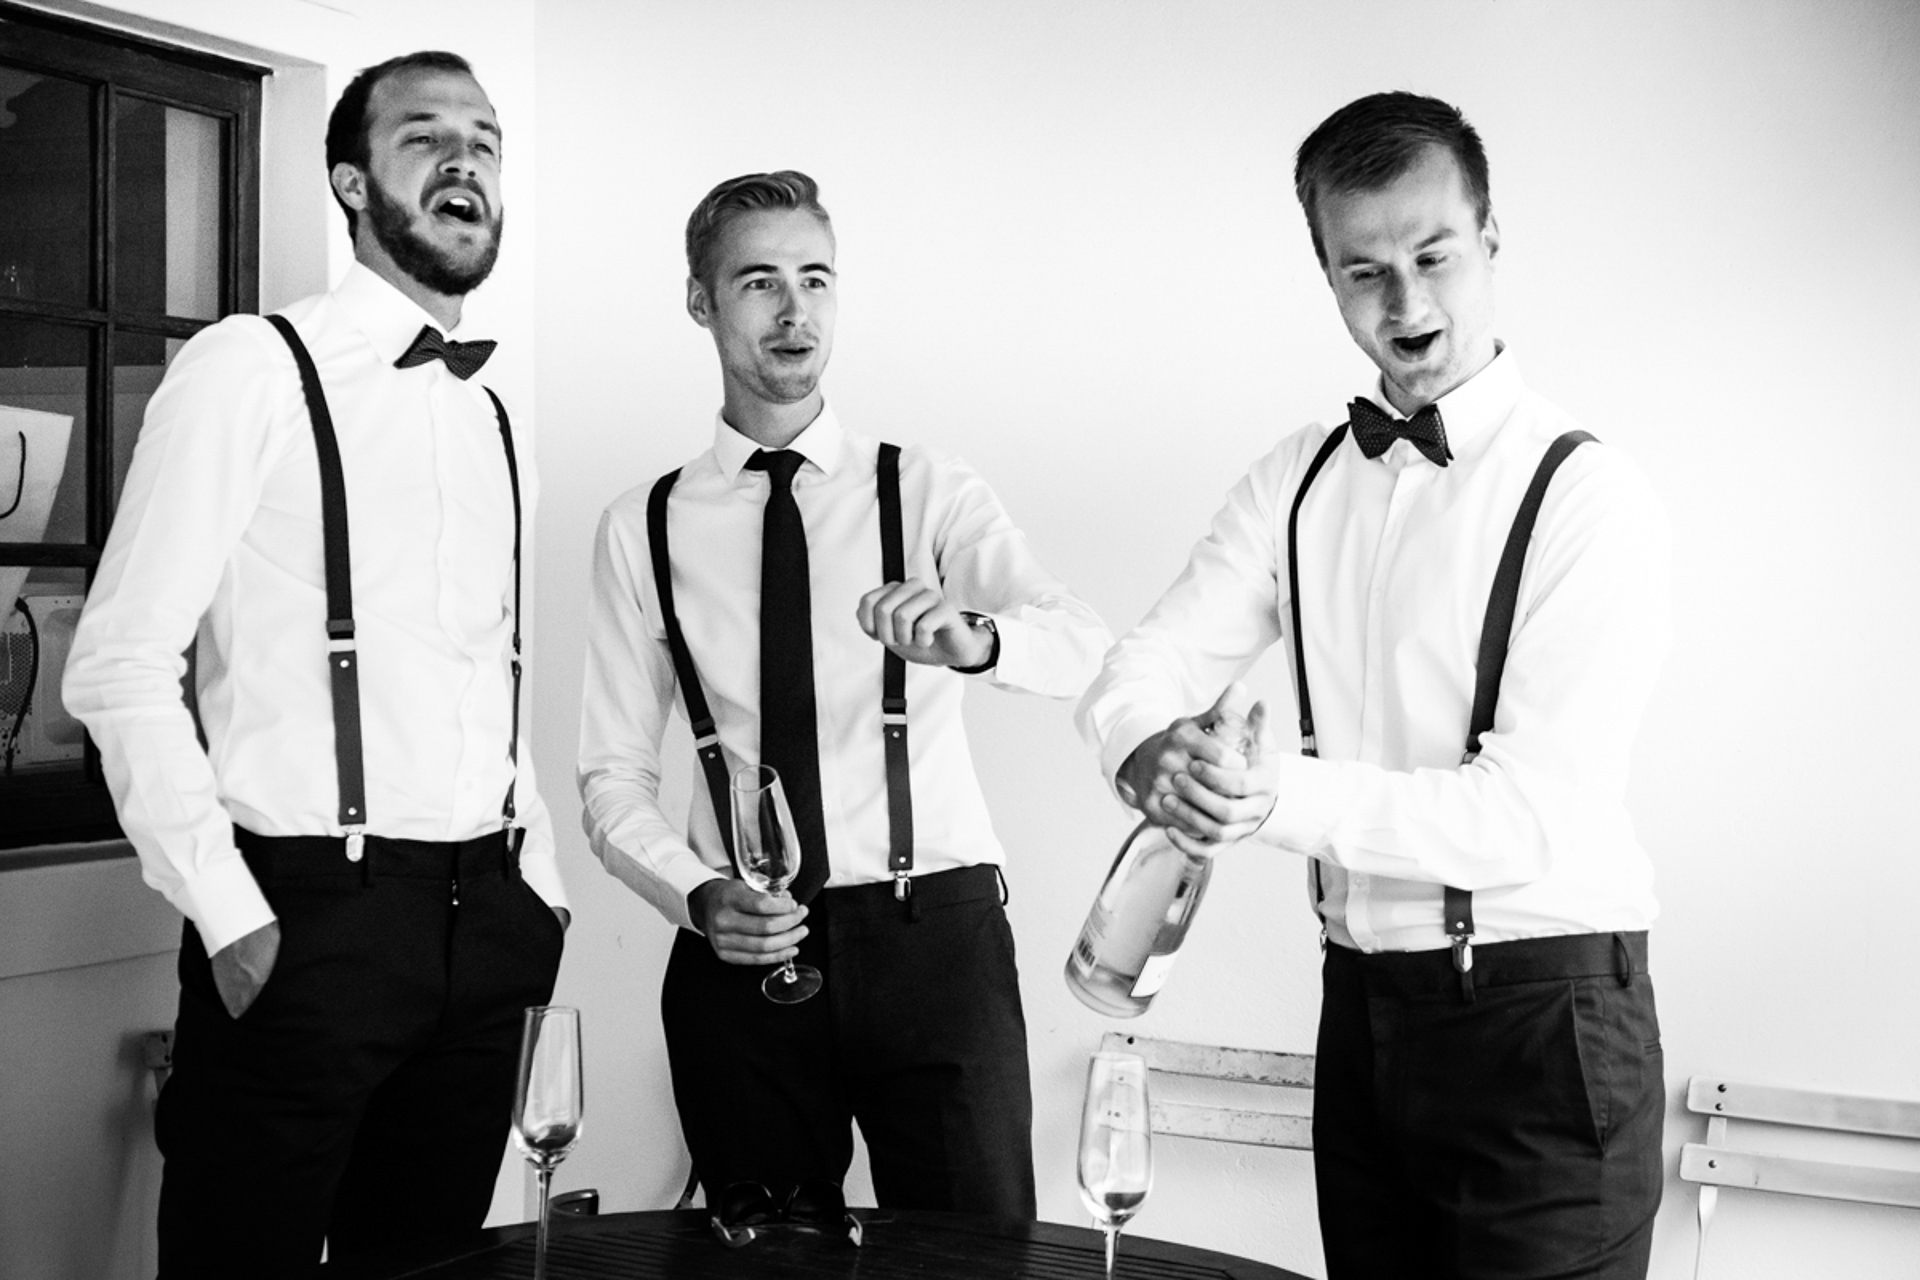 Western Cape, SA Wedding Photographers | The groom and his groomsmen react to the opening of a bottle